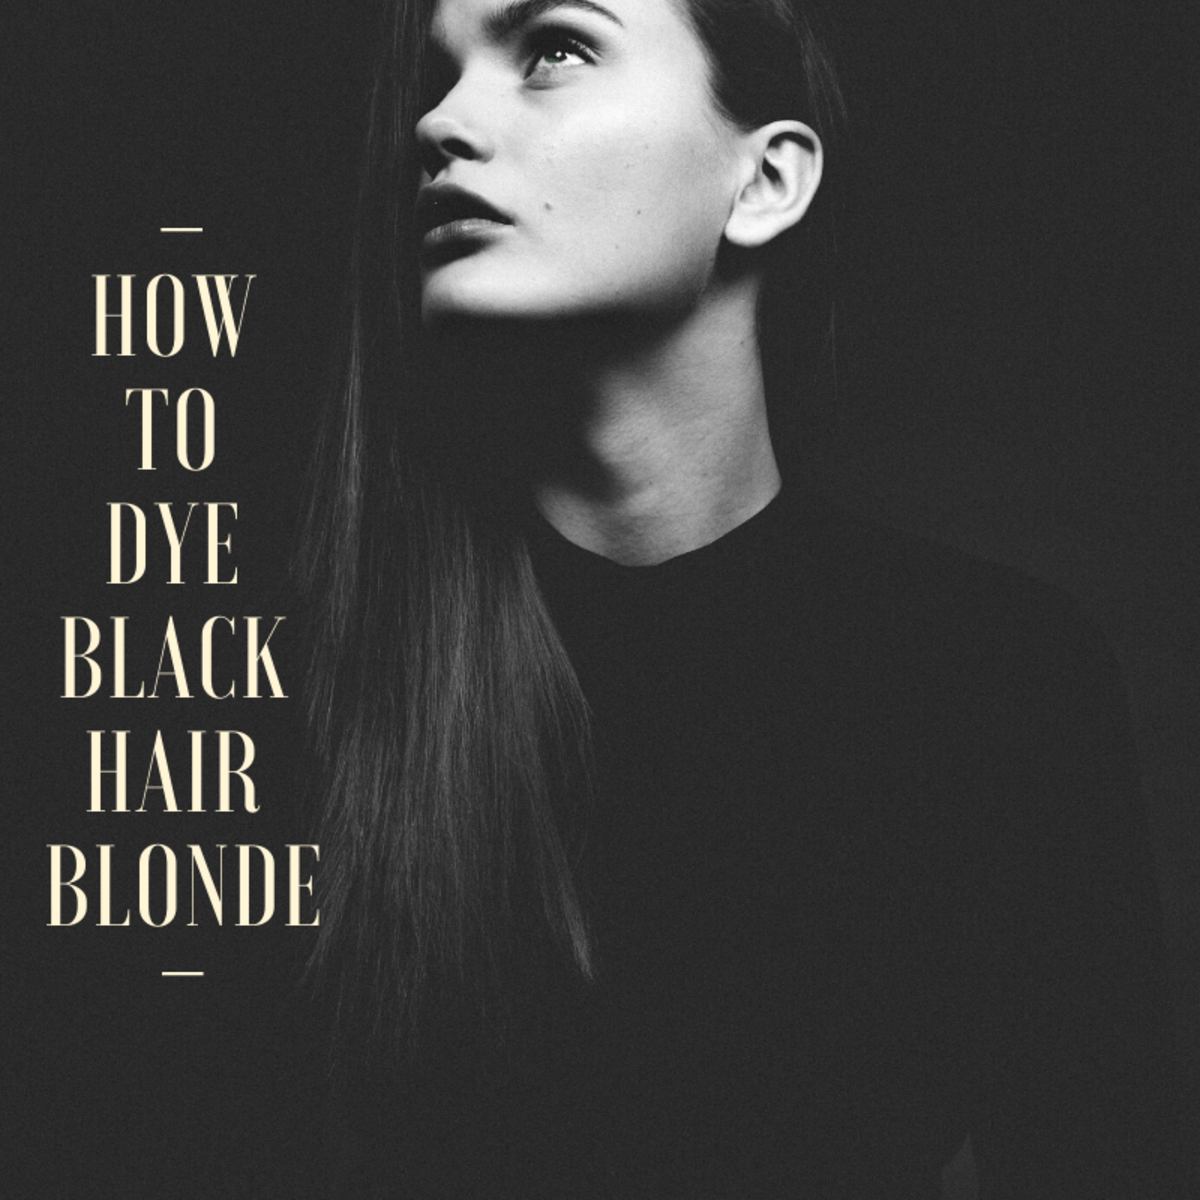 How to Dye Black Hair Blonde